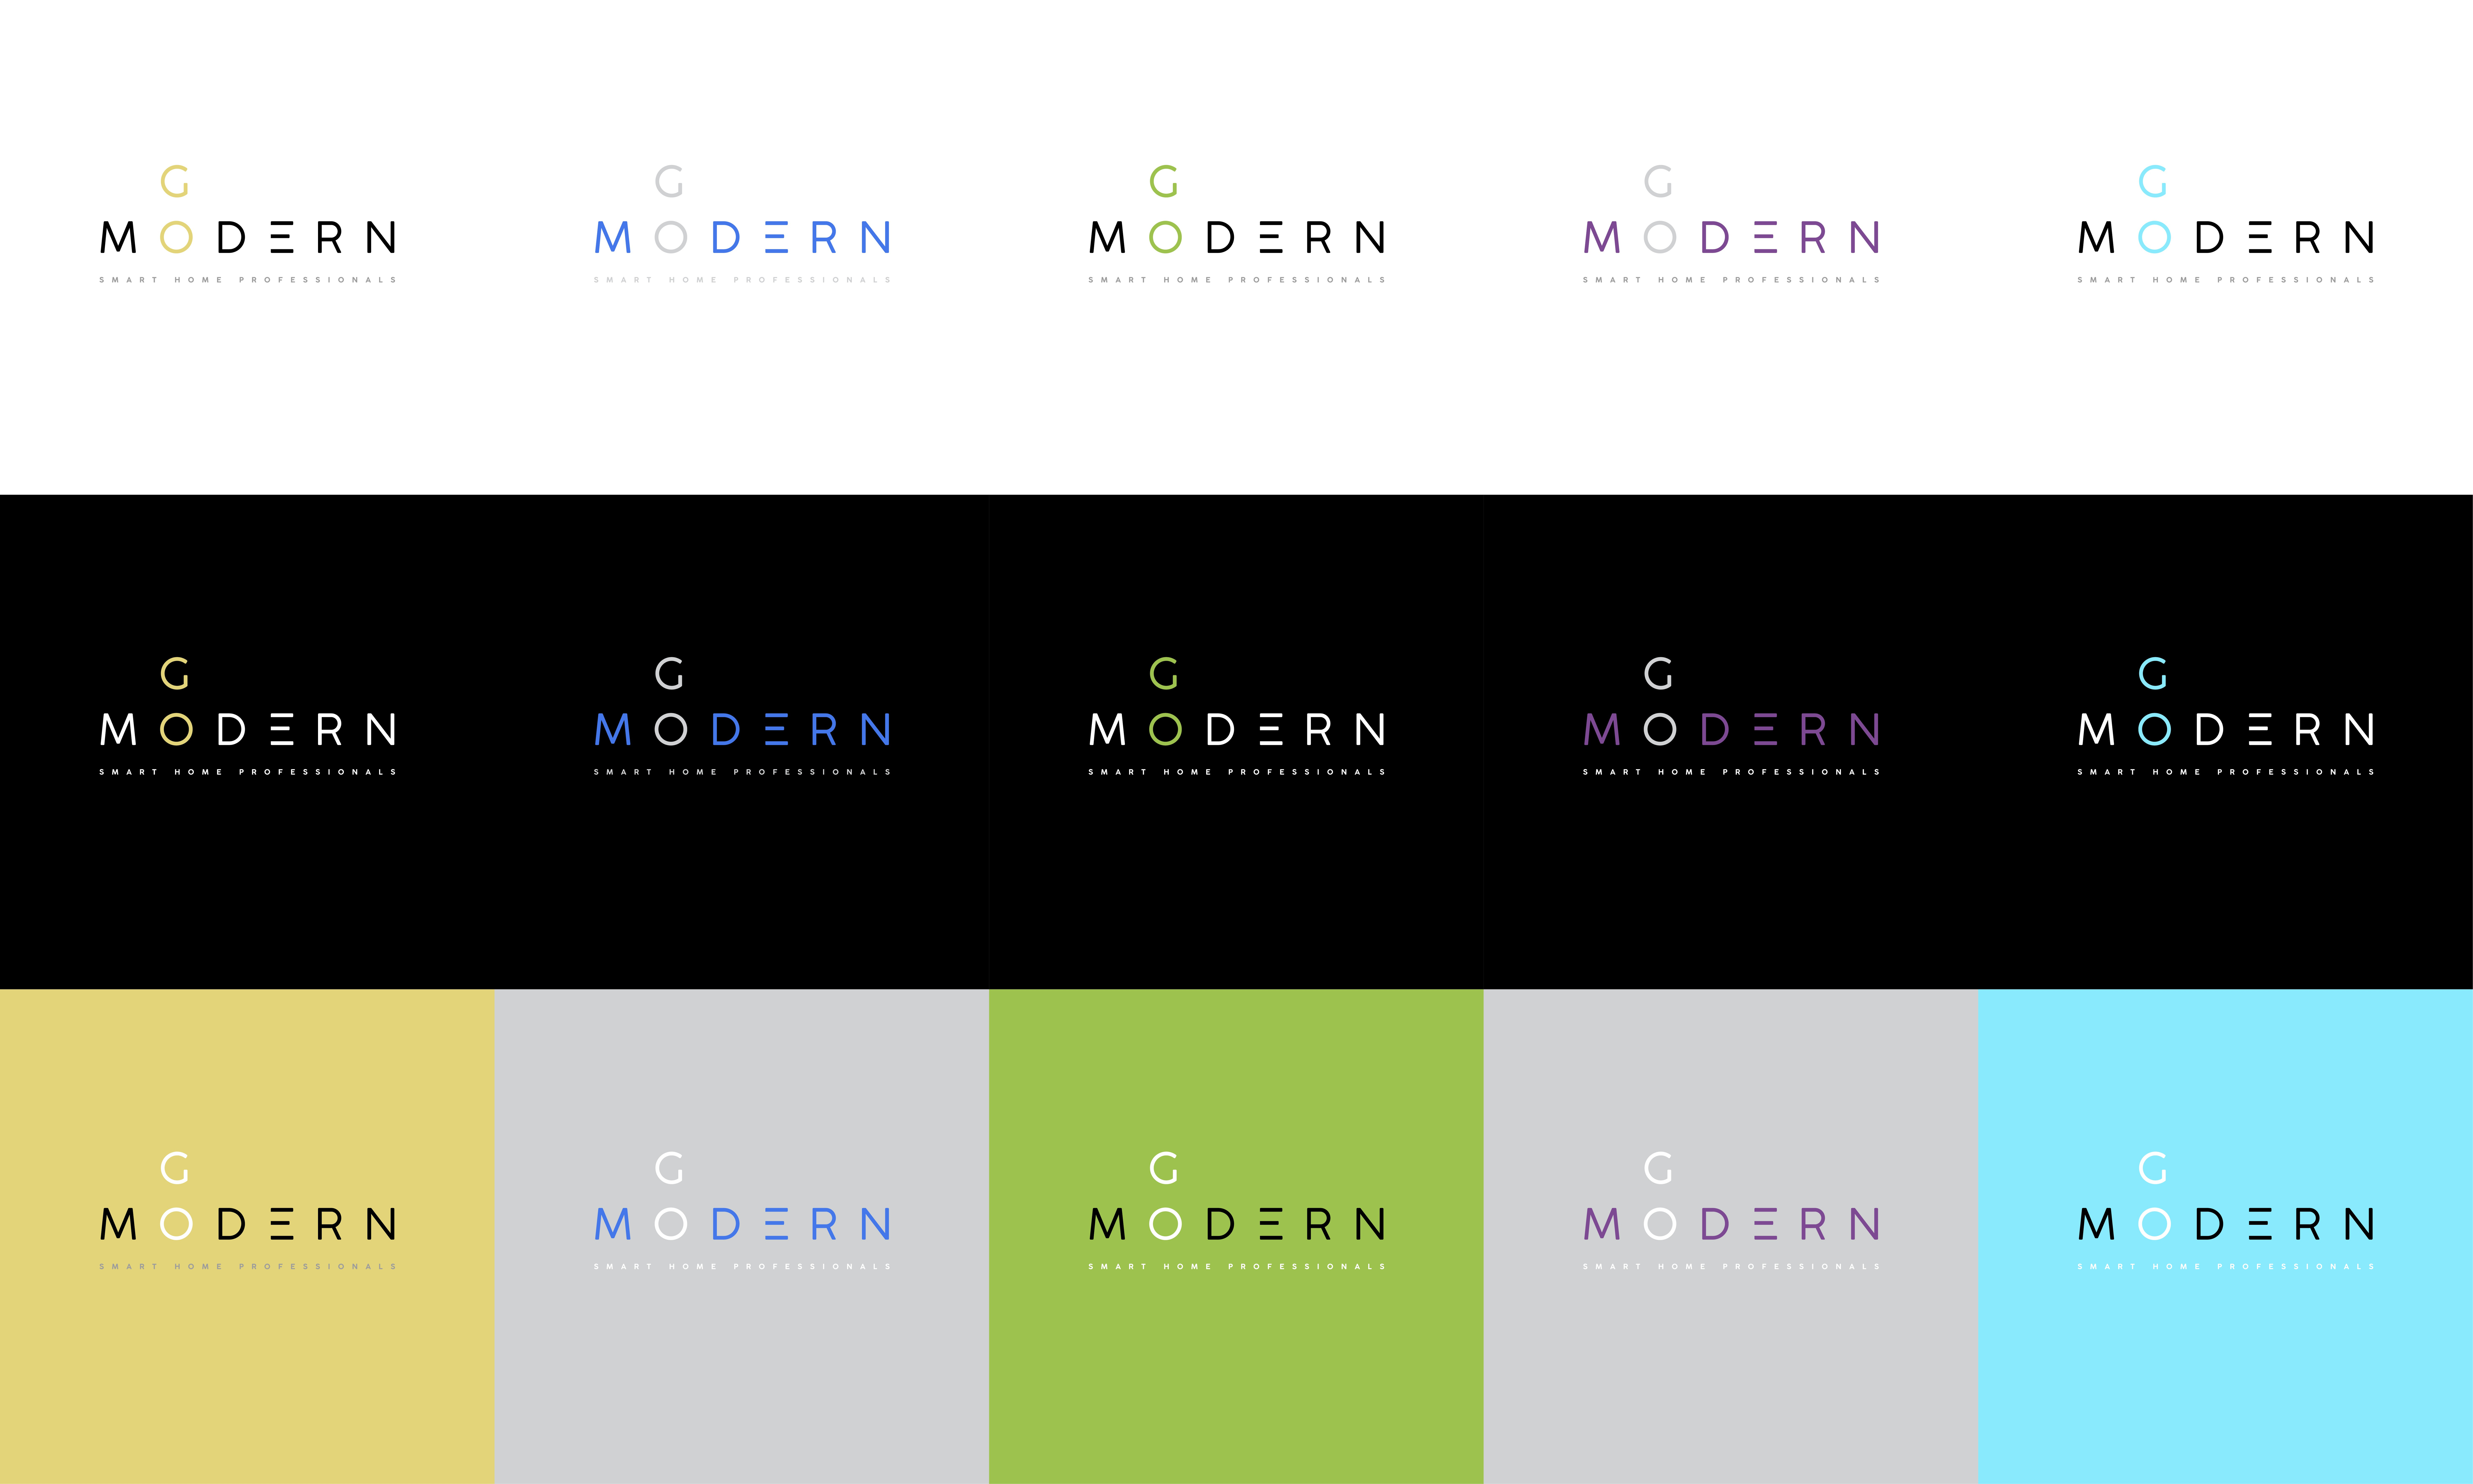 Smart Home Company looking for Modern Logo